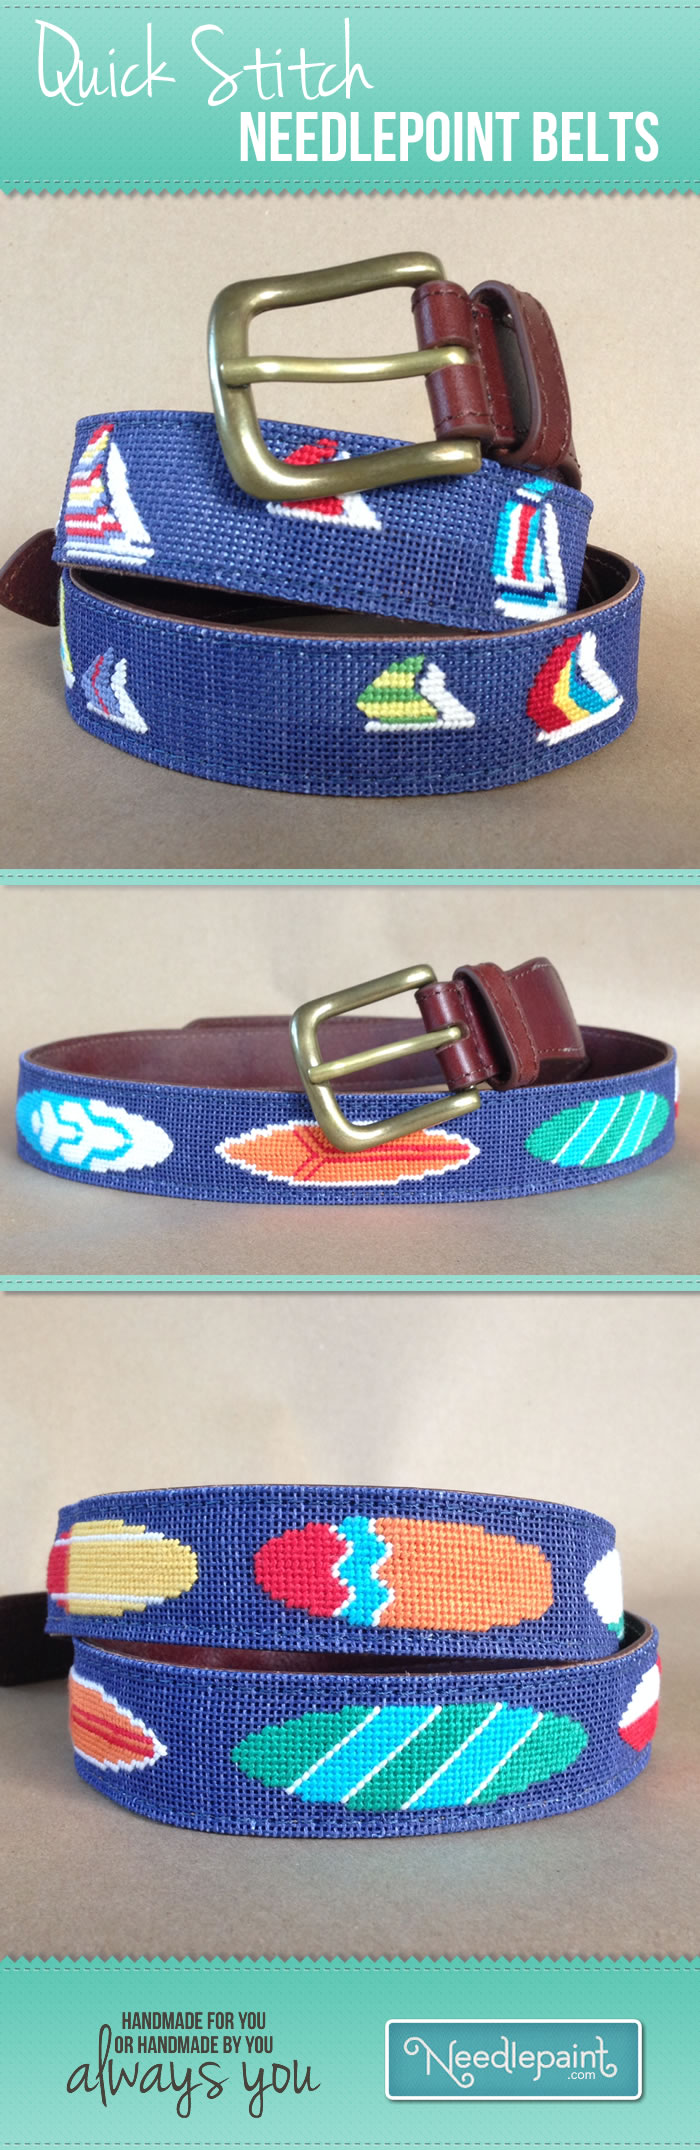 Quick Stitch Needlepoint Belts